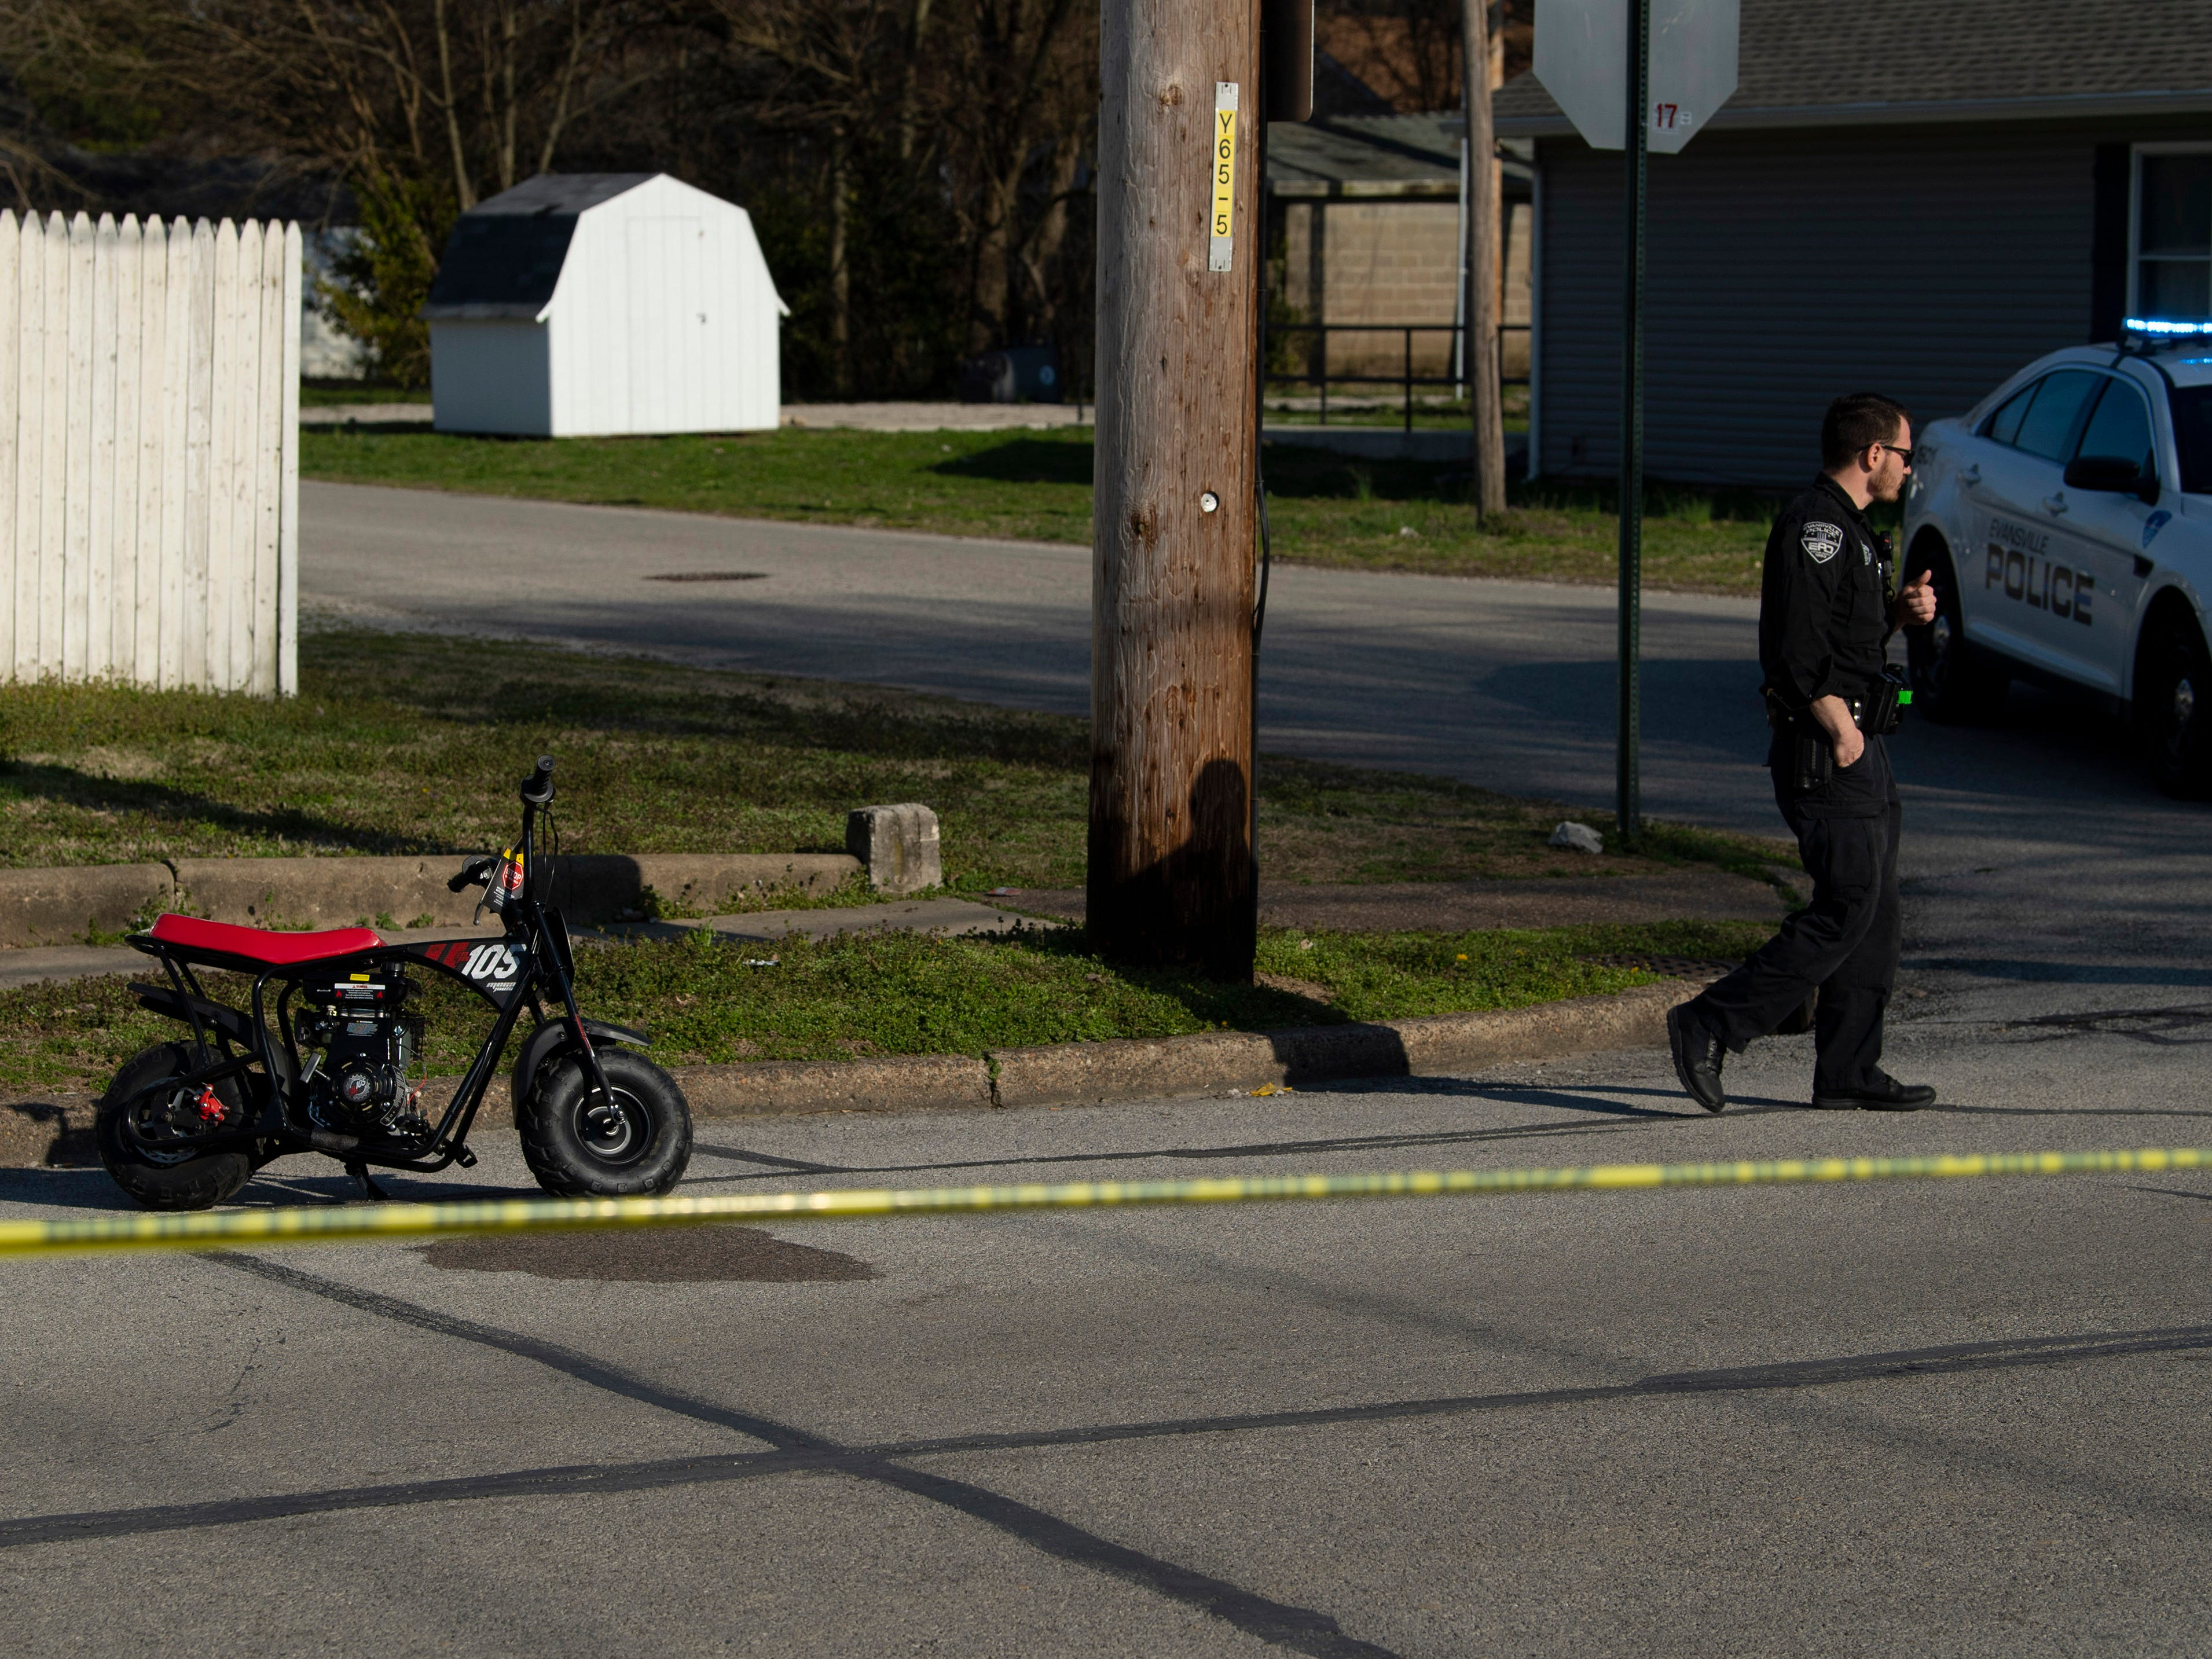 A mini-bike is still intact at the corner of Cass Avenue and Governor Street after it's rider – said to be a boy of about 11 years old by police – allegedly ran a stop sign and ran into a passing Ford Mustang Tuesday evening. The boy was transported by ambulance with what police said didn't appear to be life-threatening injuries. The driver of the car was not arrested, but the accident is still under investigation.